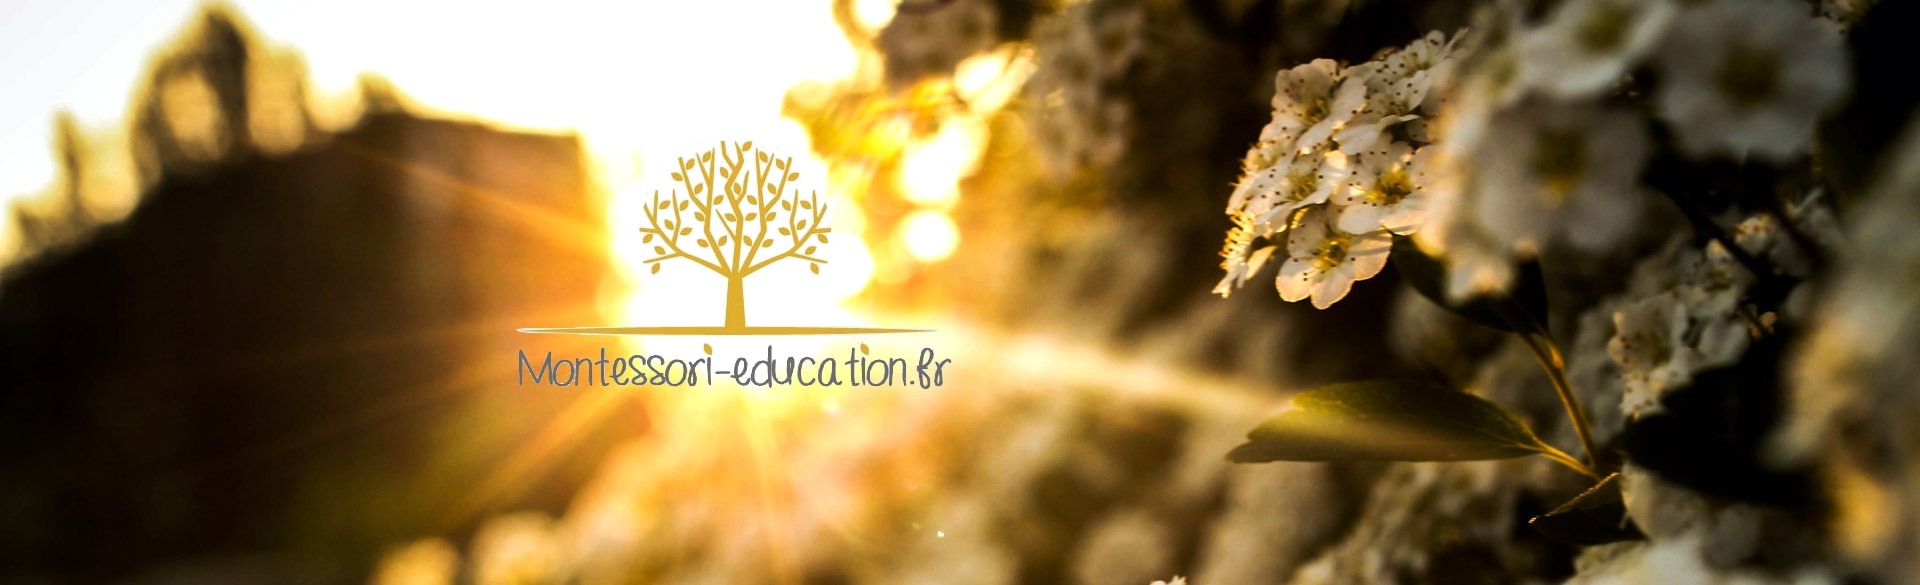 montessori-education